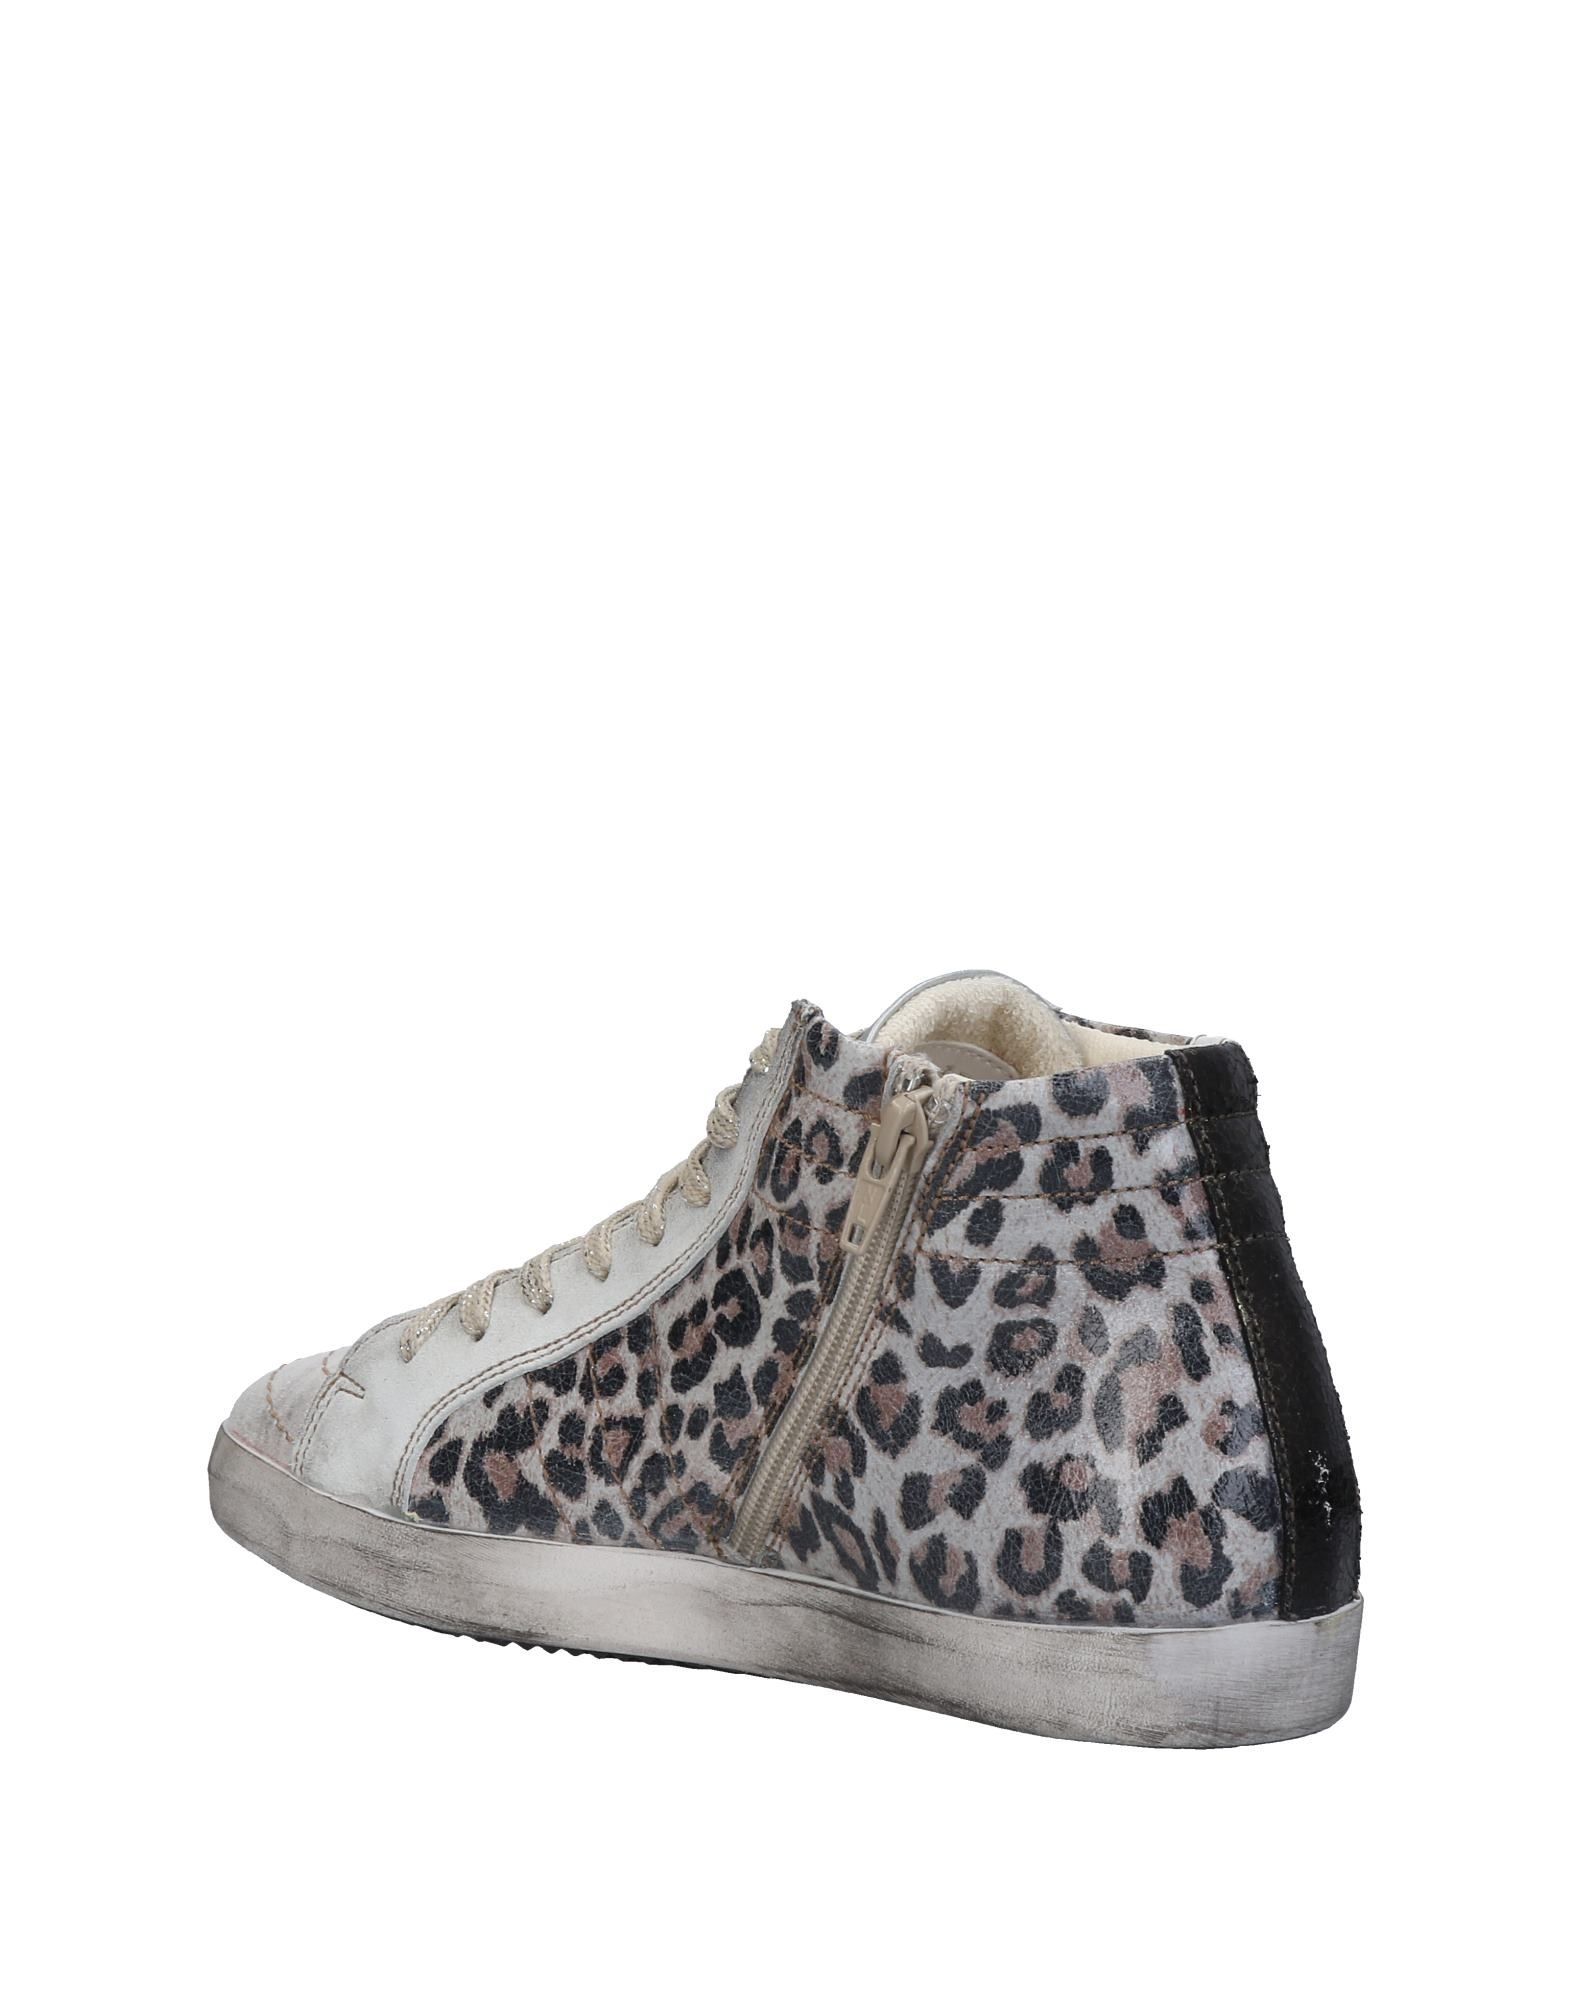 Primabase Primabase Primabase Sneakers - Women Primabase Sneakers online on  Canada - 11451719TG 704b7f